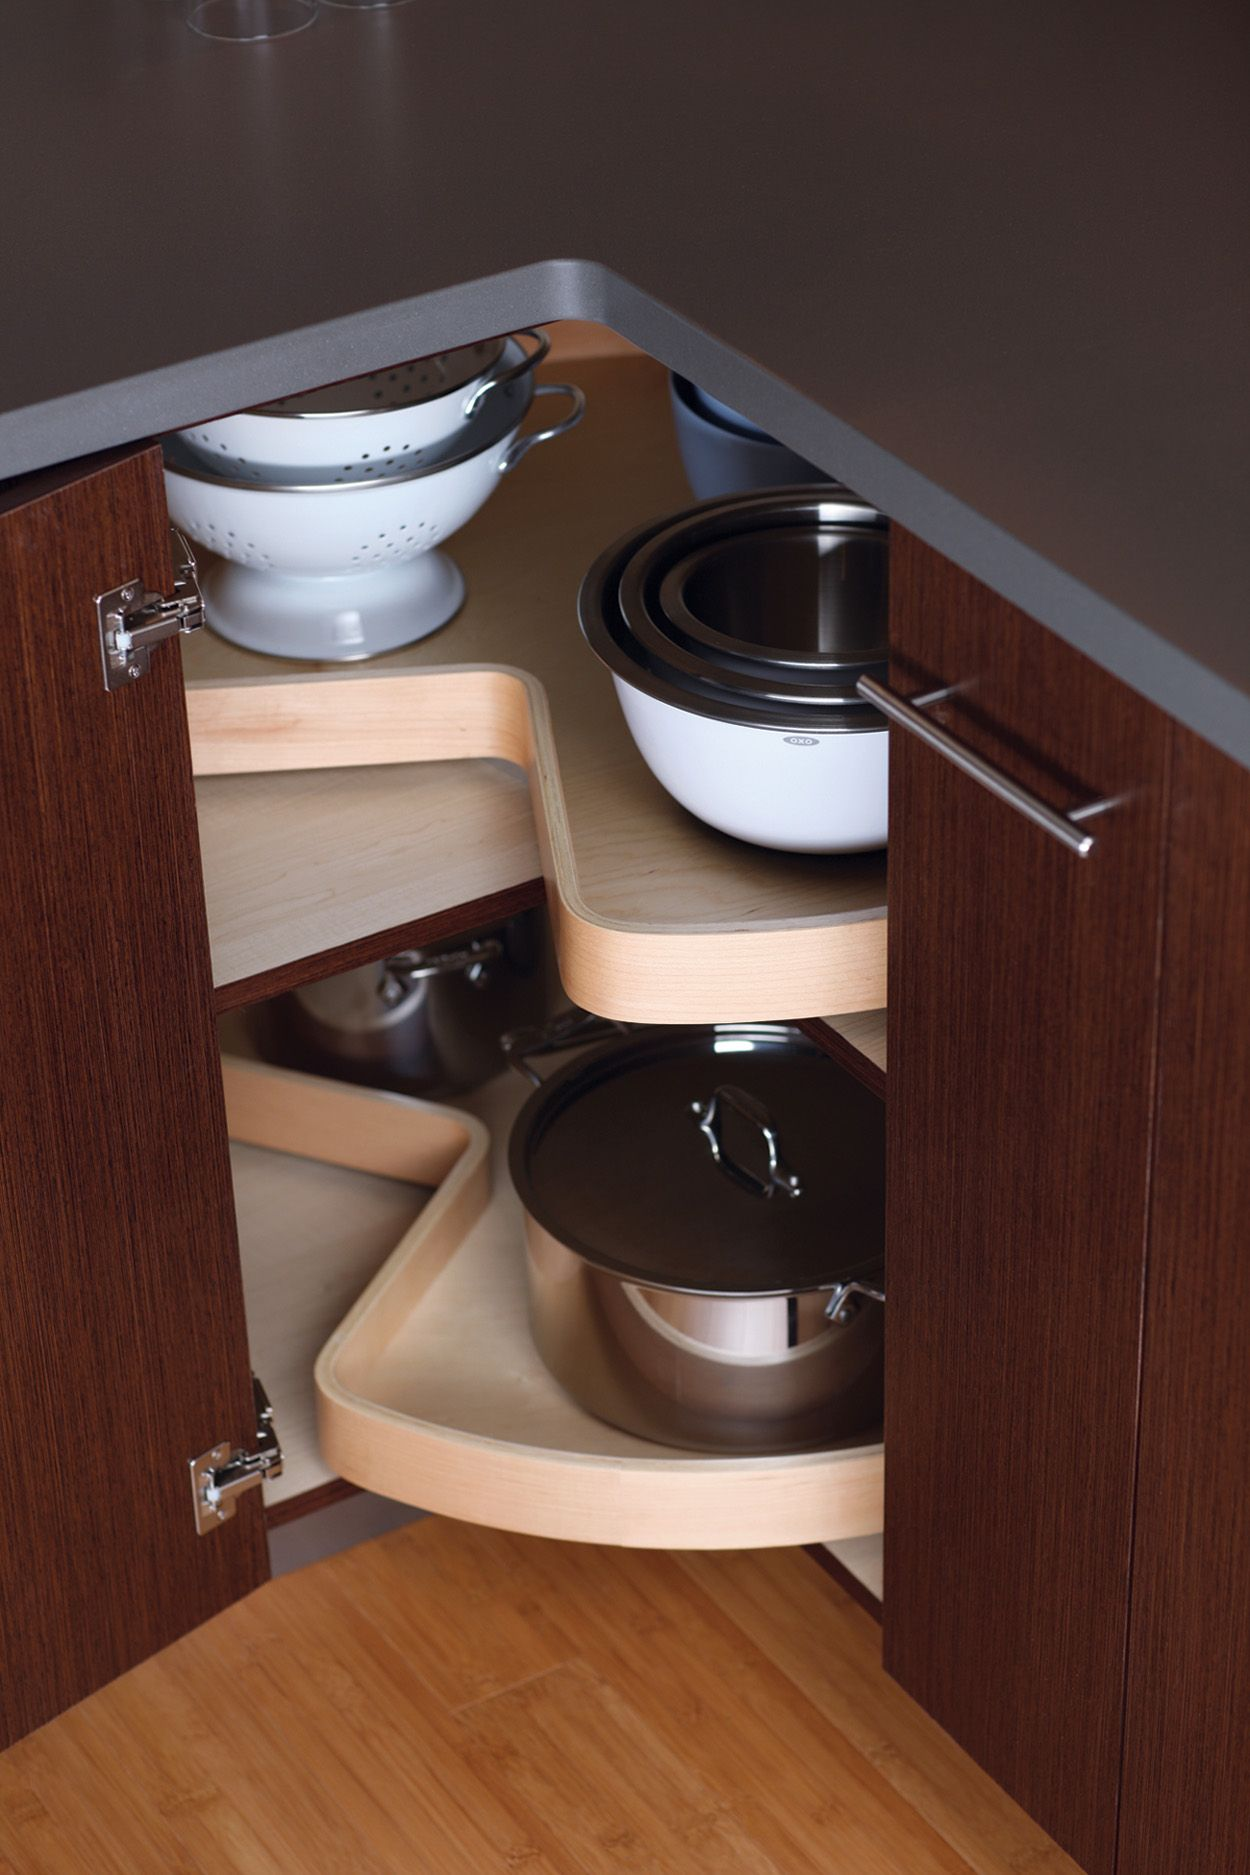 Dura Supreme S Giant Turntable Shelves Lazy Susan Swivel Inside The Cabinet And Utilize Corner Kitchen Cabinet Kitchen Cabinet Storage Solutions Tiny Kitchen